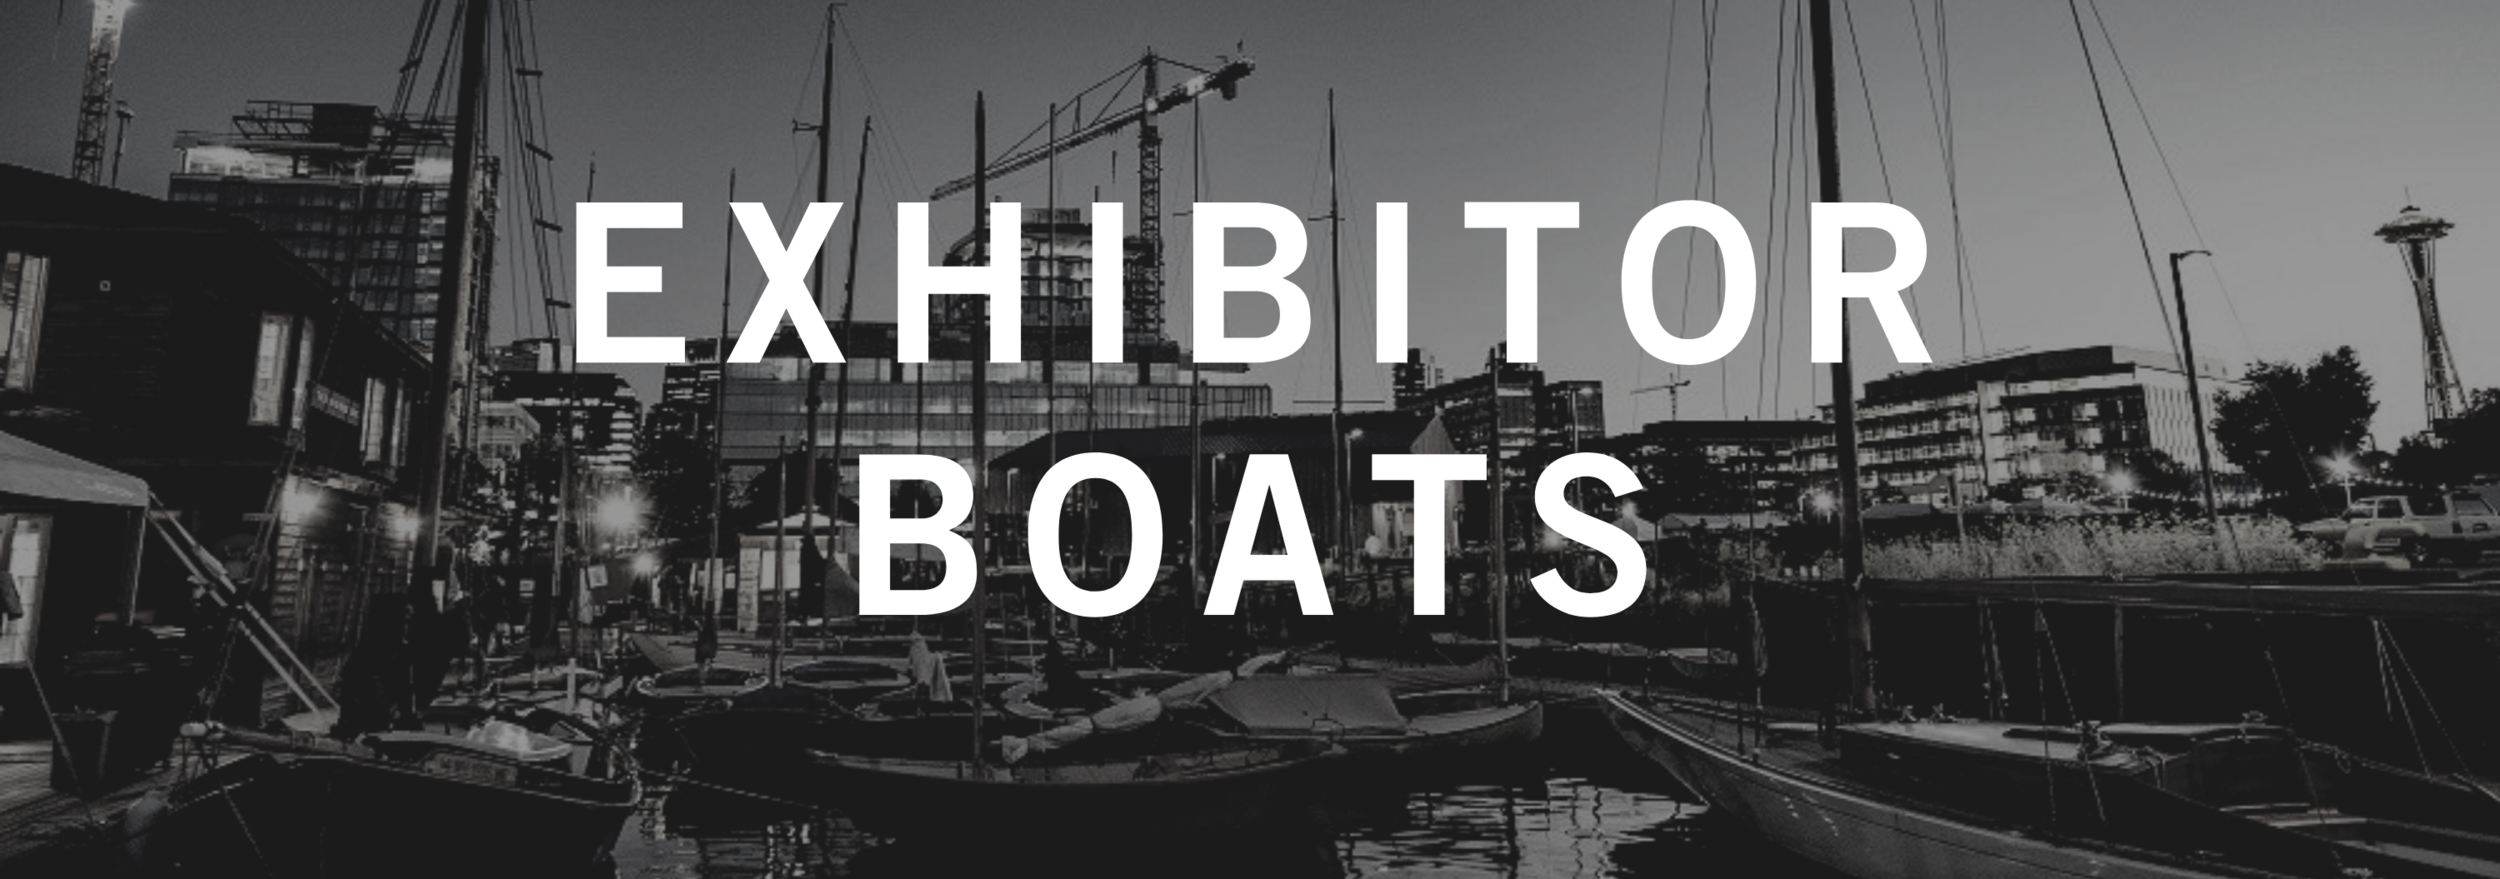 Exhibitor Boats Banner.png